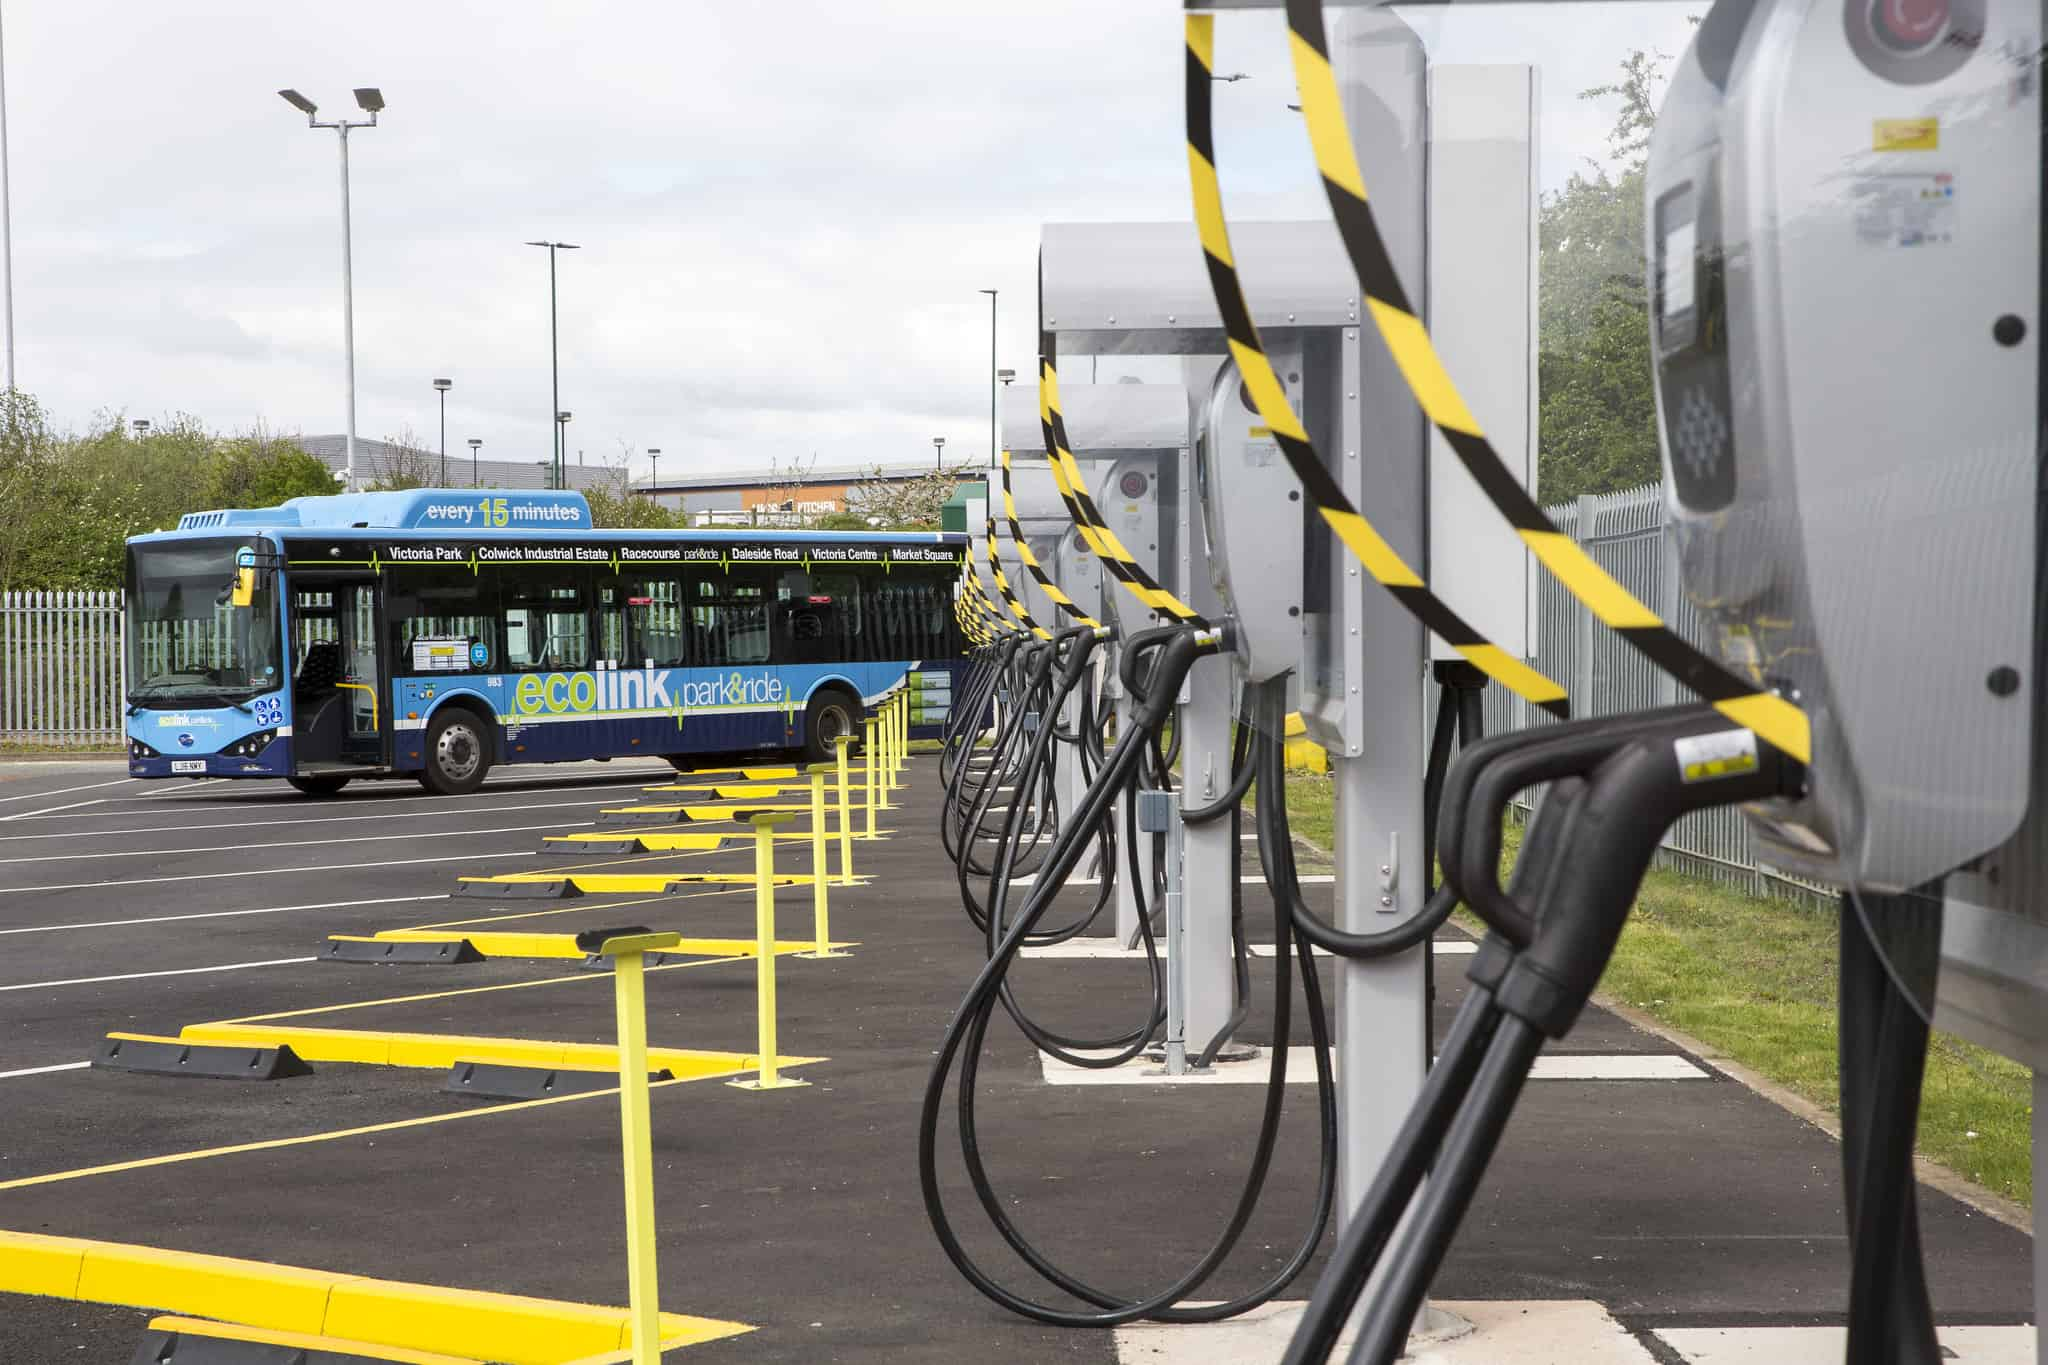 Charging points and an electric bus